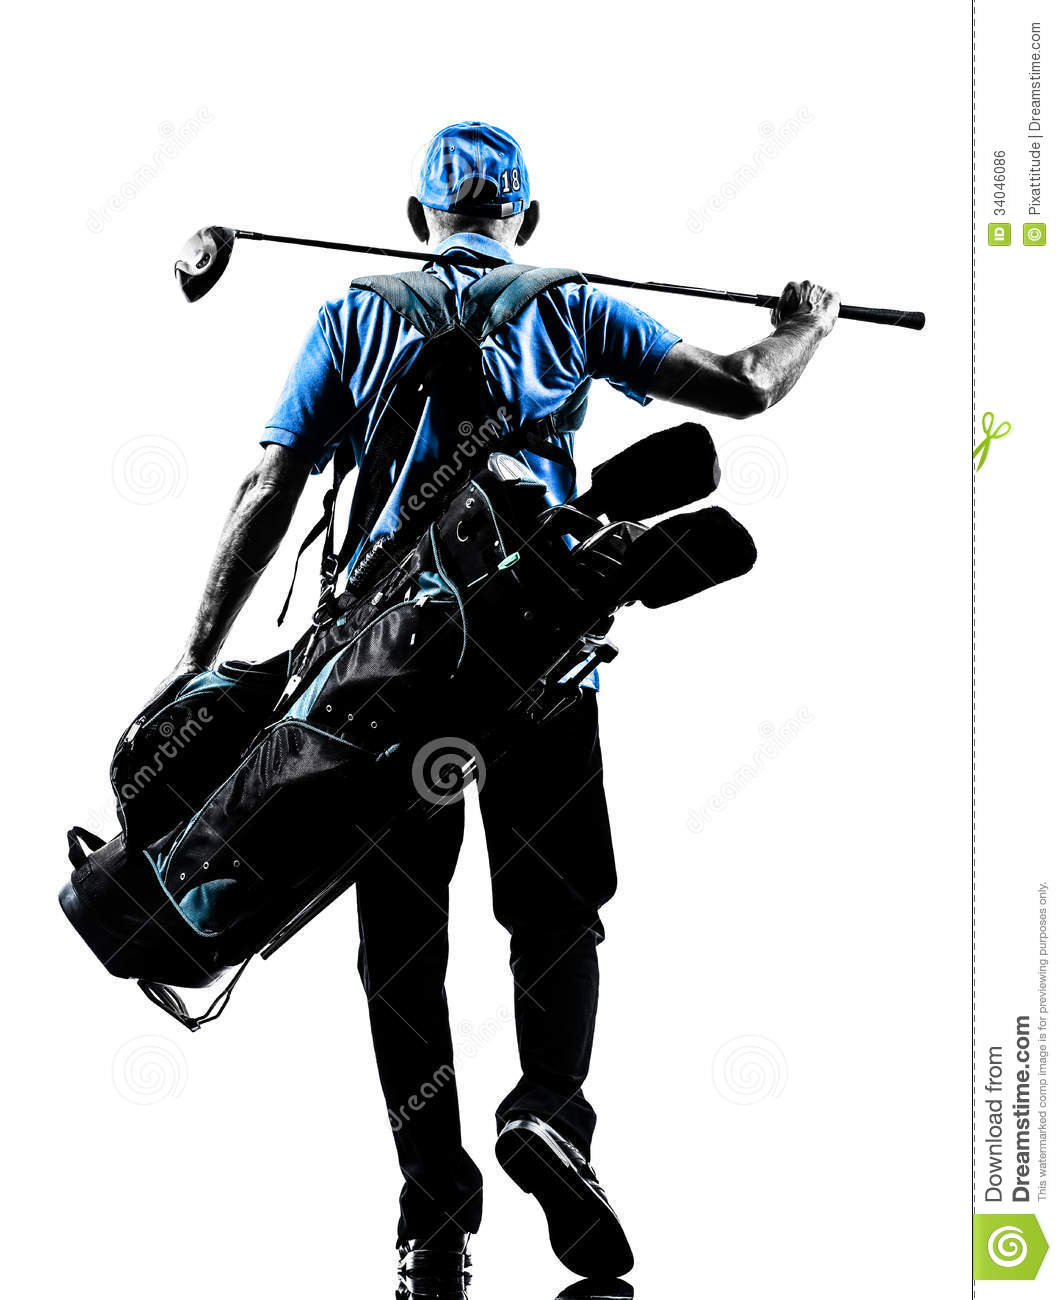 One man golfer golfing golf bag walking in silhouette studio isolated ...